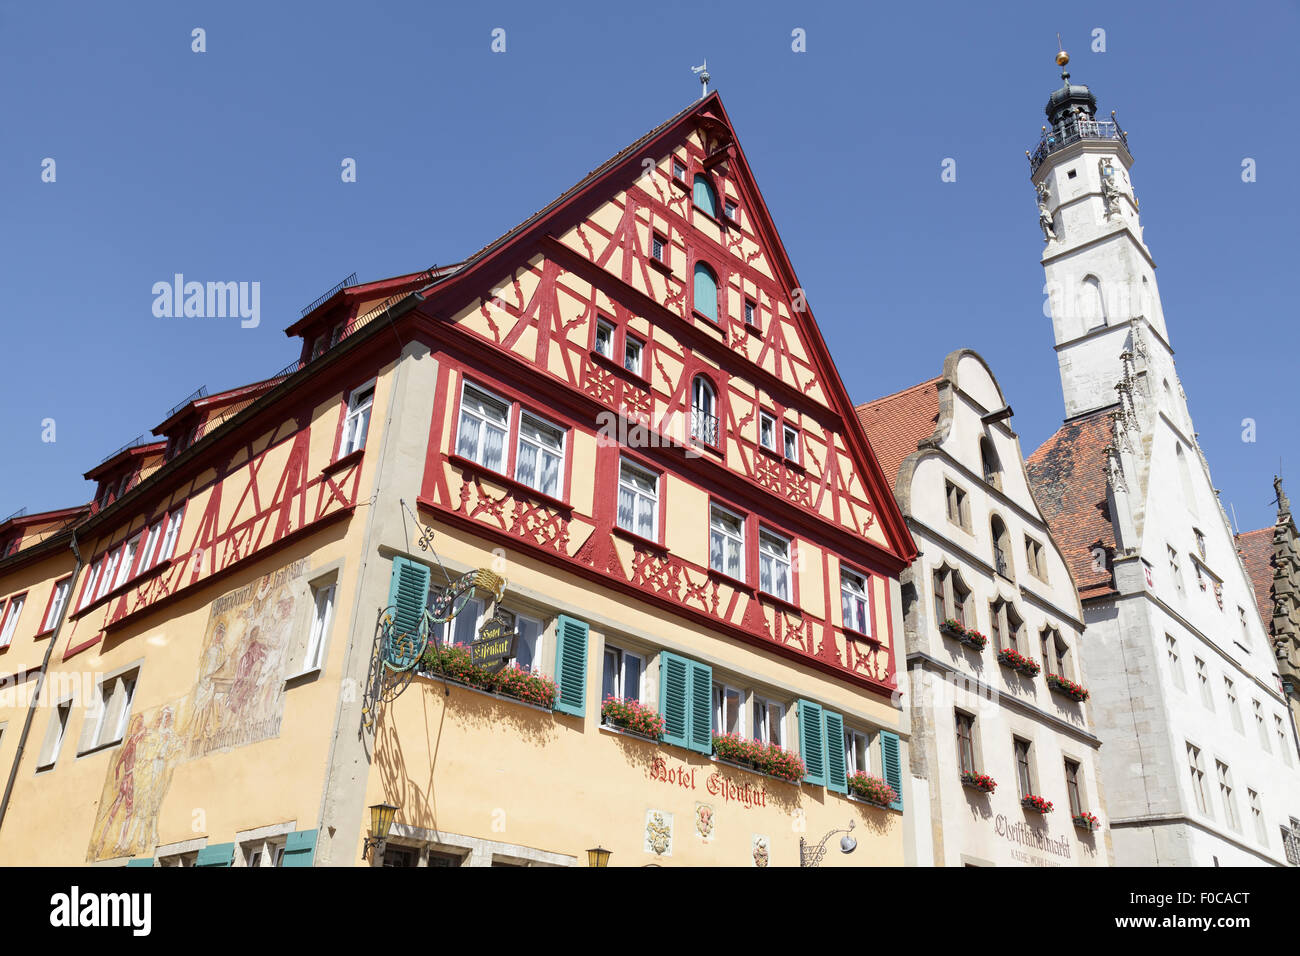 typical buildings on Hernngasse, Rothenburg ob der Tauber, Franconia, Bavaria, Germany - Stock Image